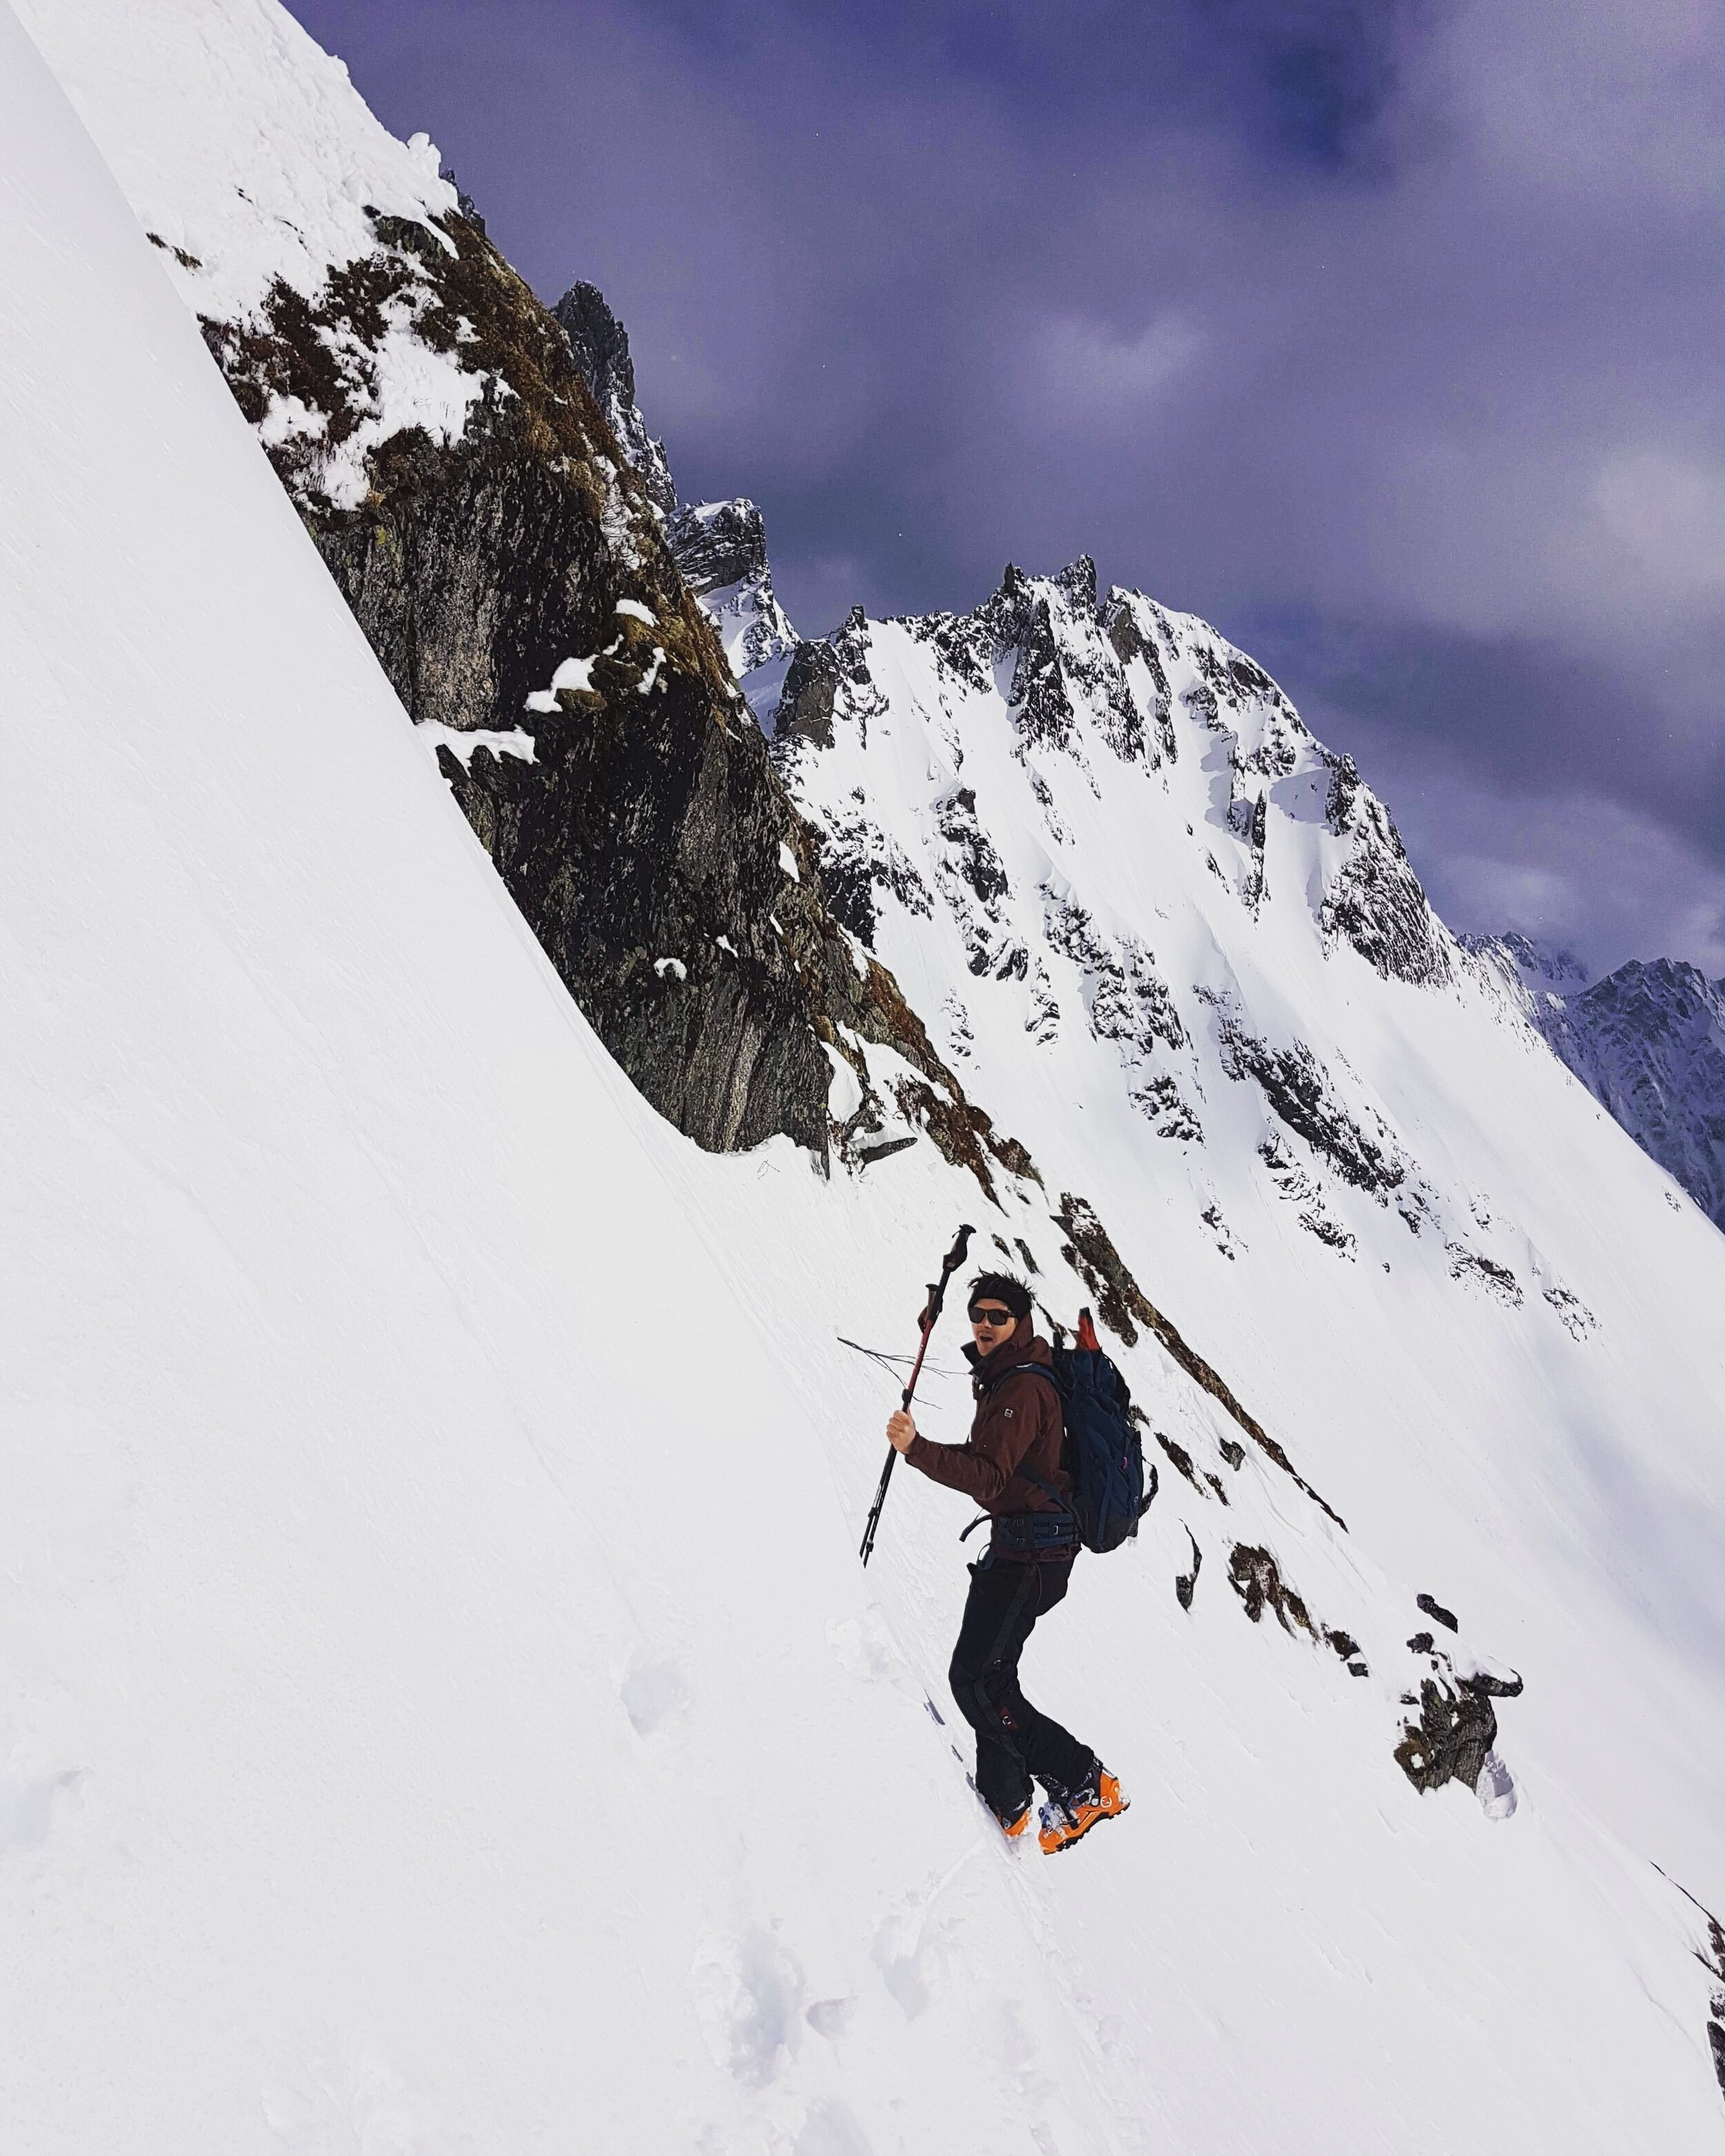 Vincent on a ski touring trip in Sunnmøre.